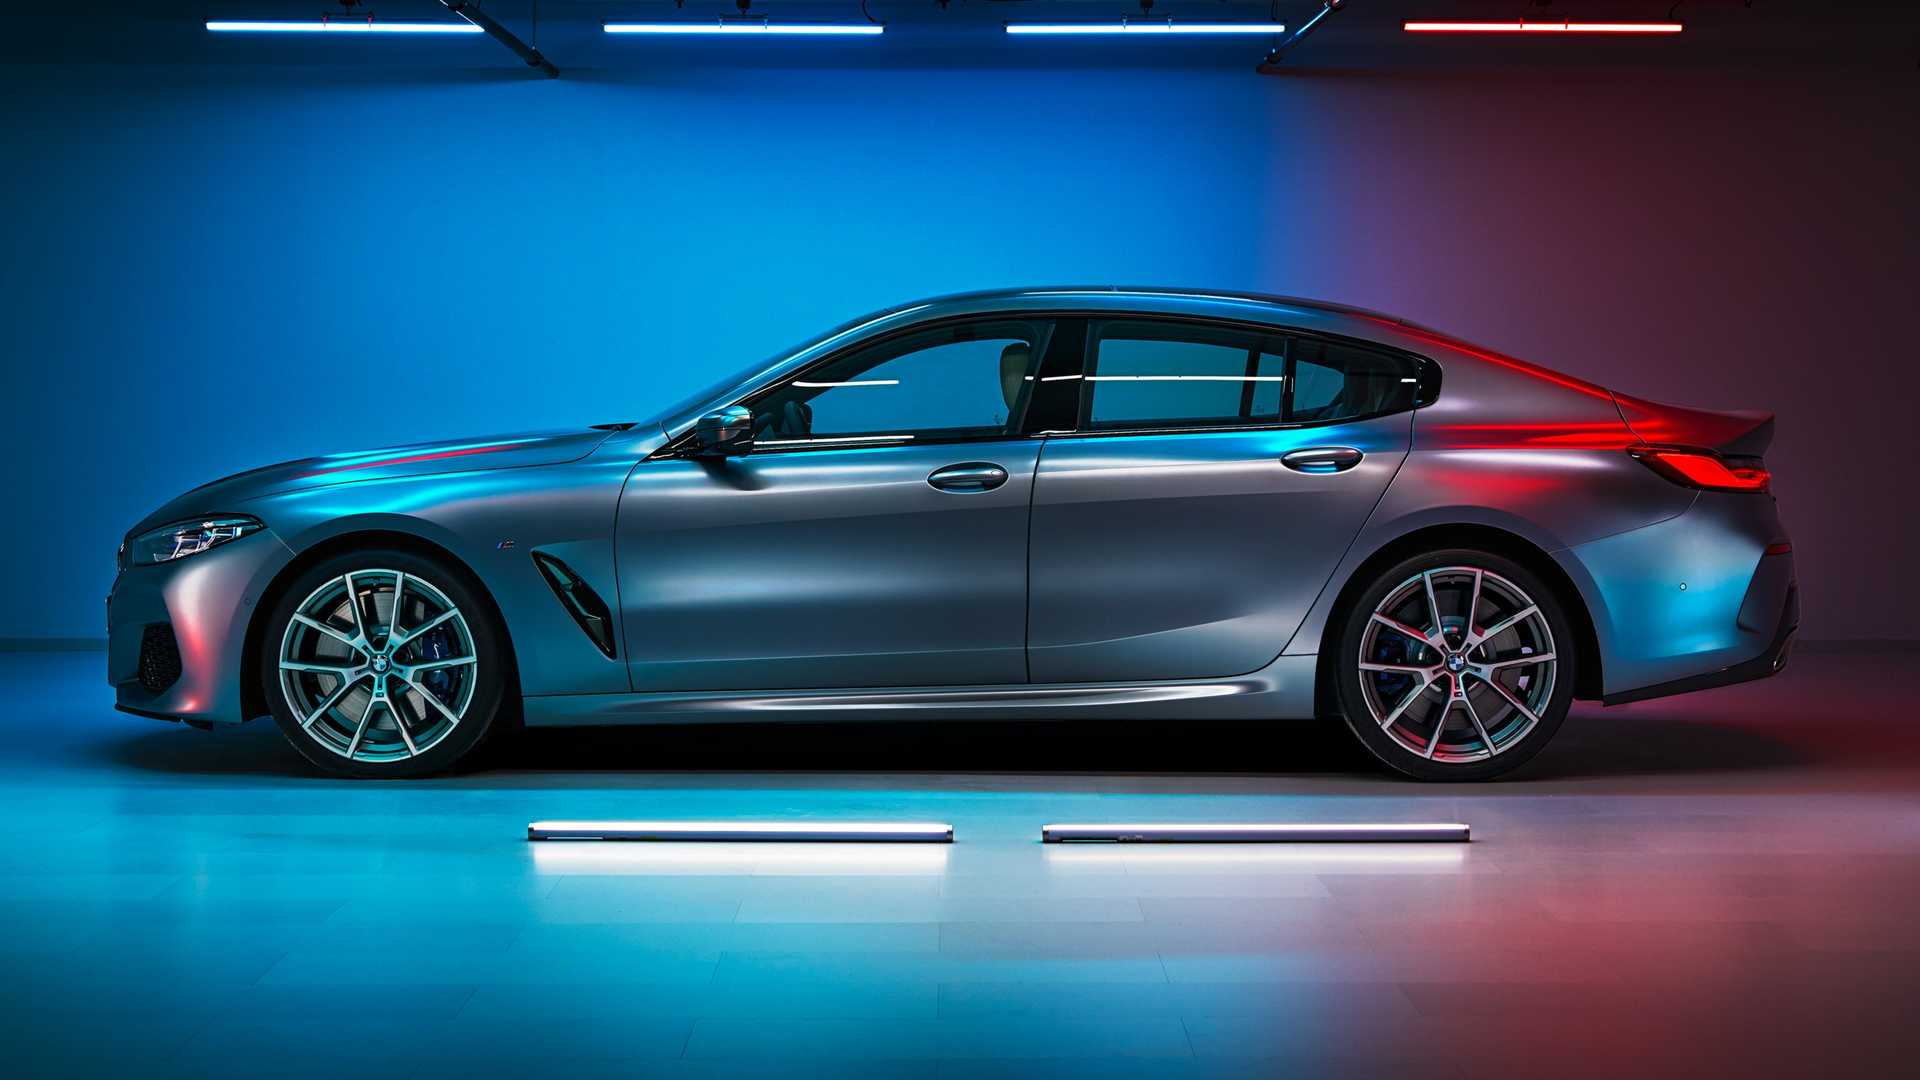 BMW 8 Series Gran Coupe Videos Show Off The Stylish Sedan